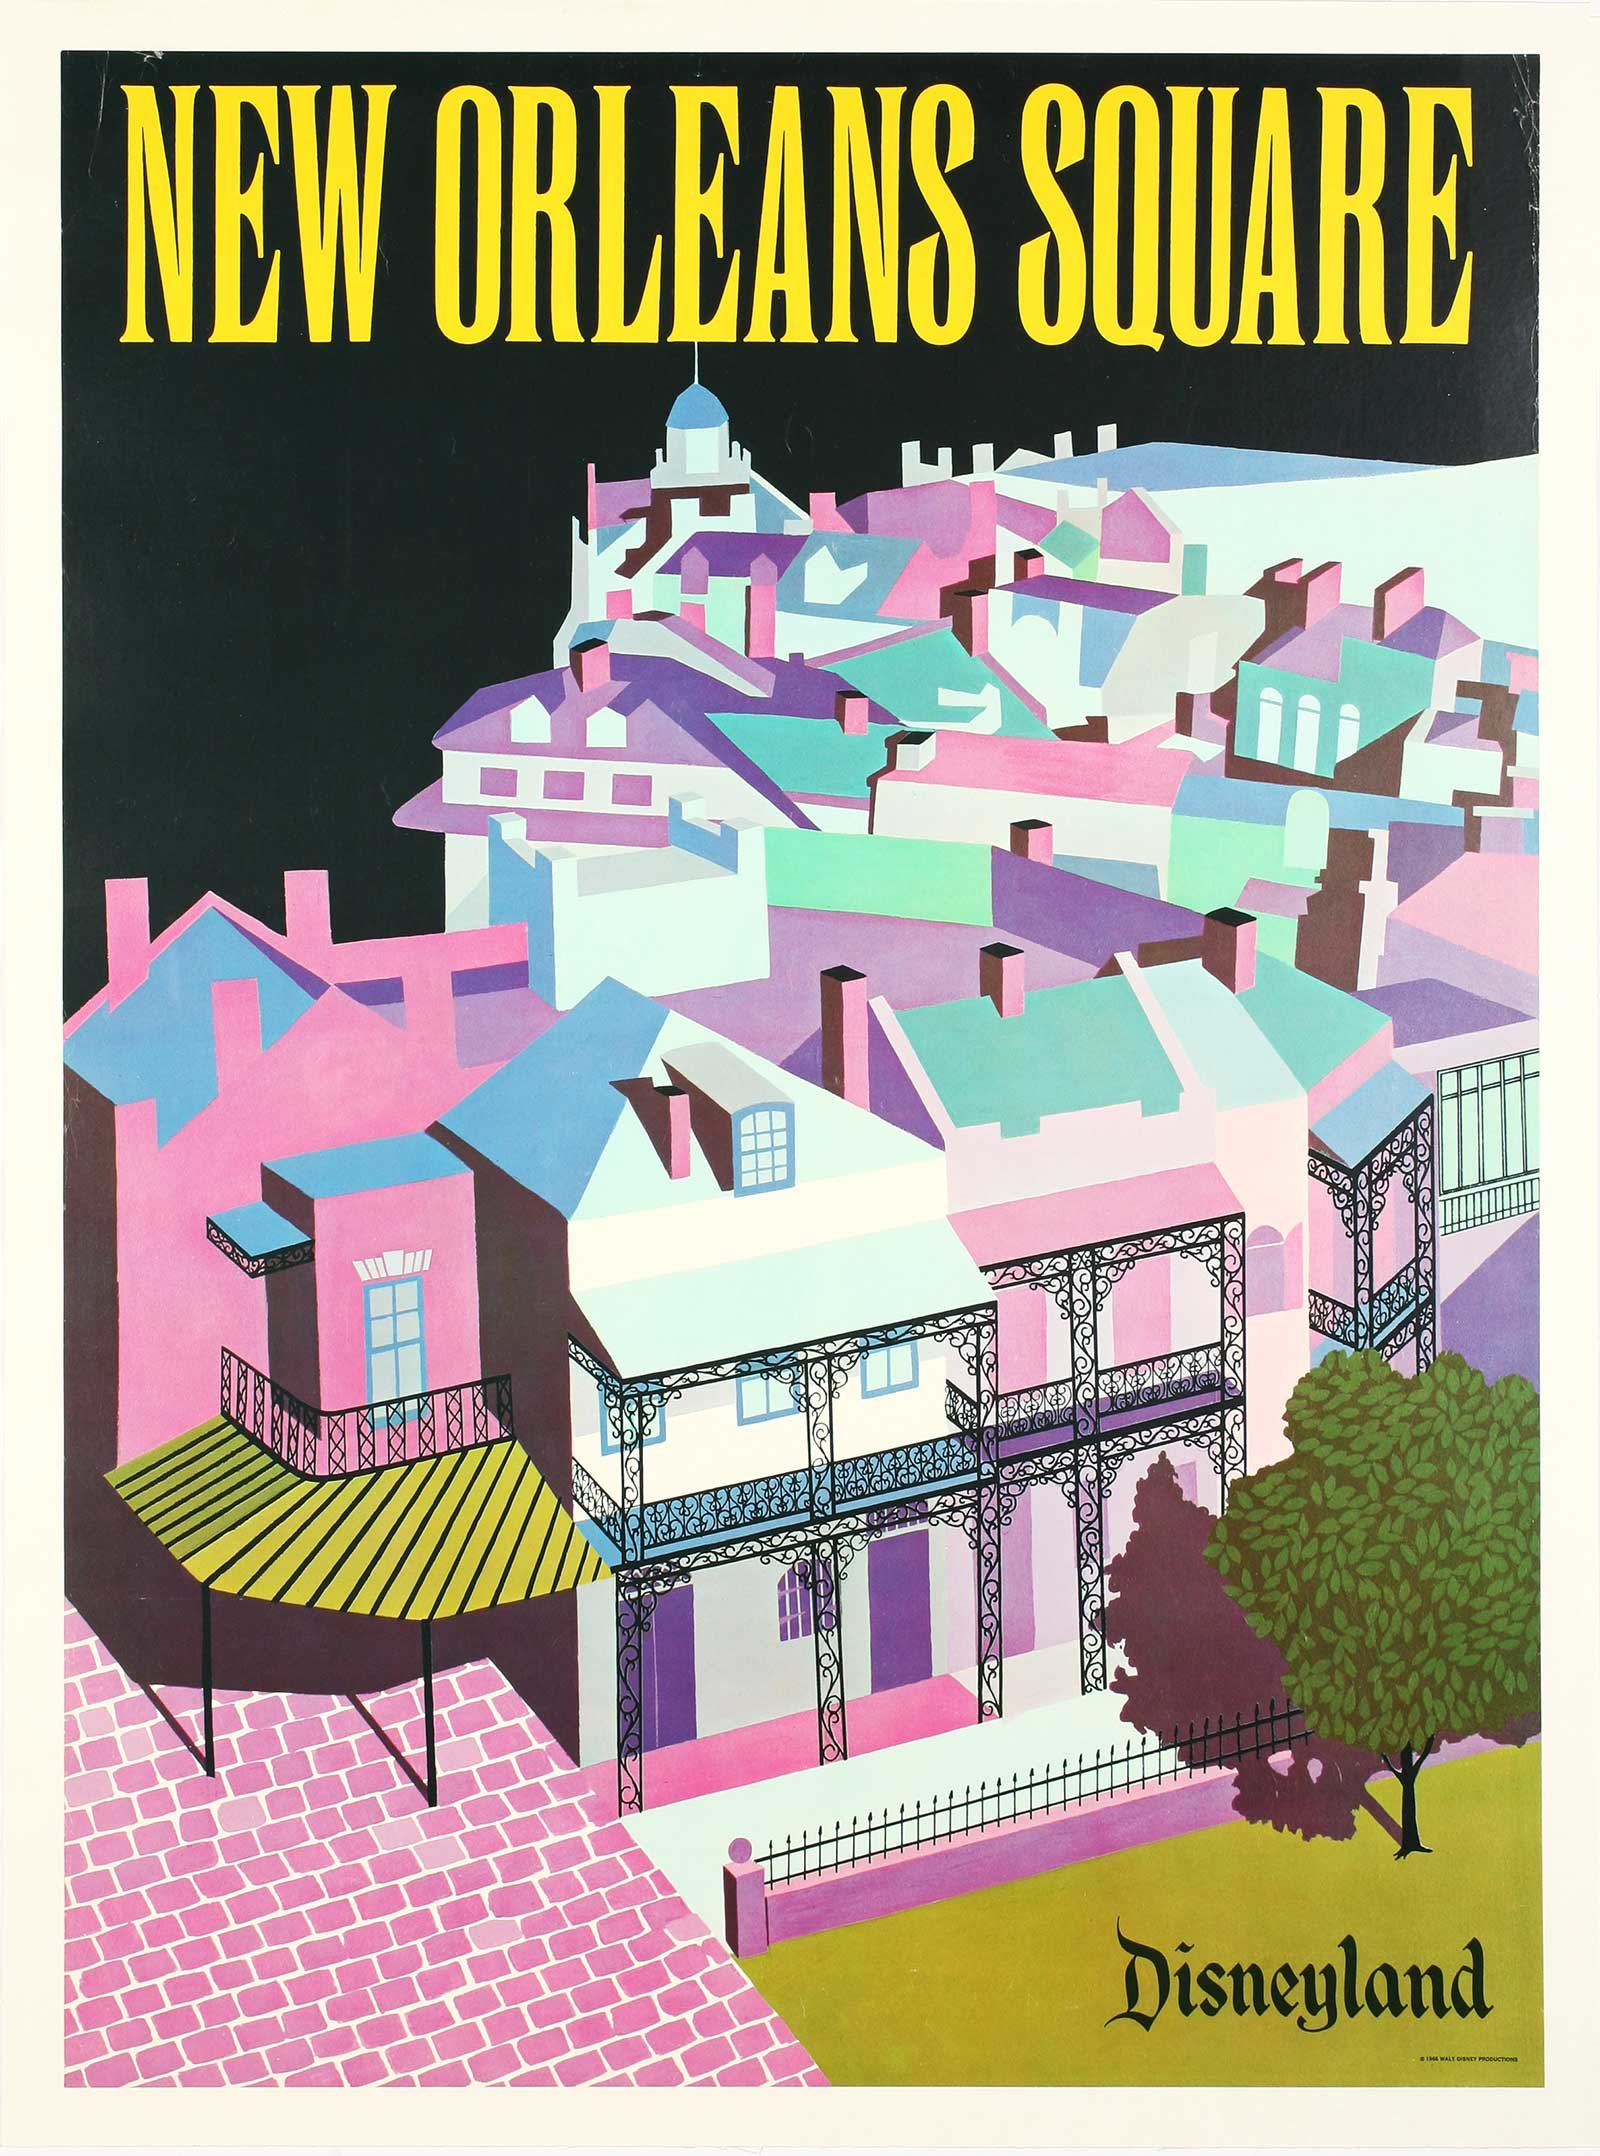 See Gorgeous Vintage Disneyland Posters From the Park's Early Years